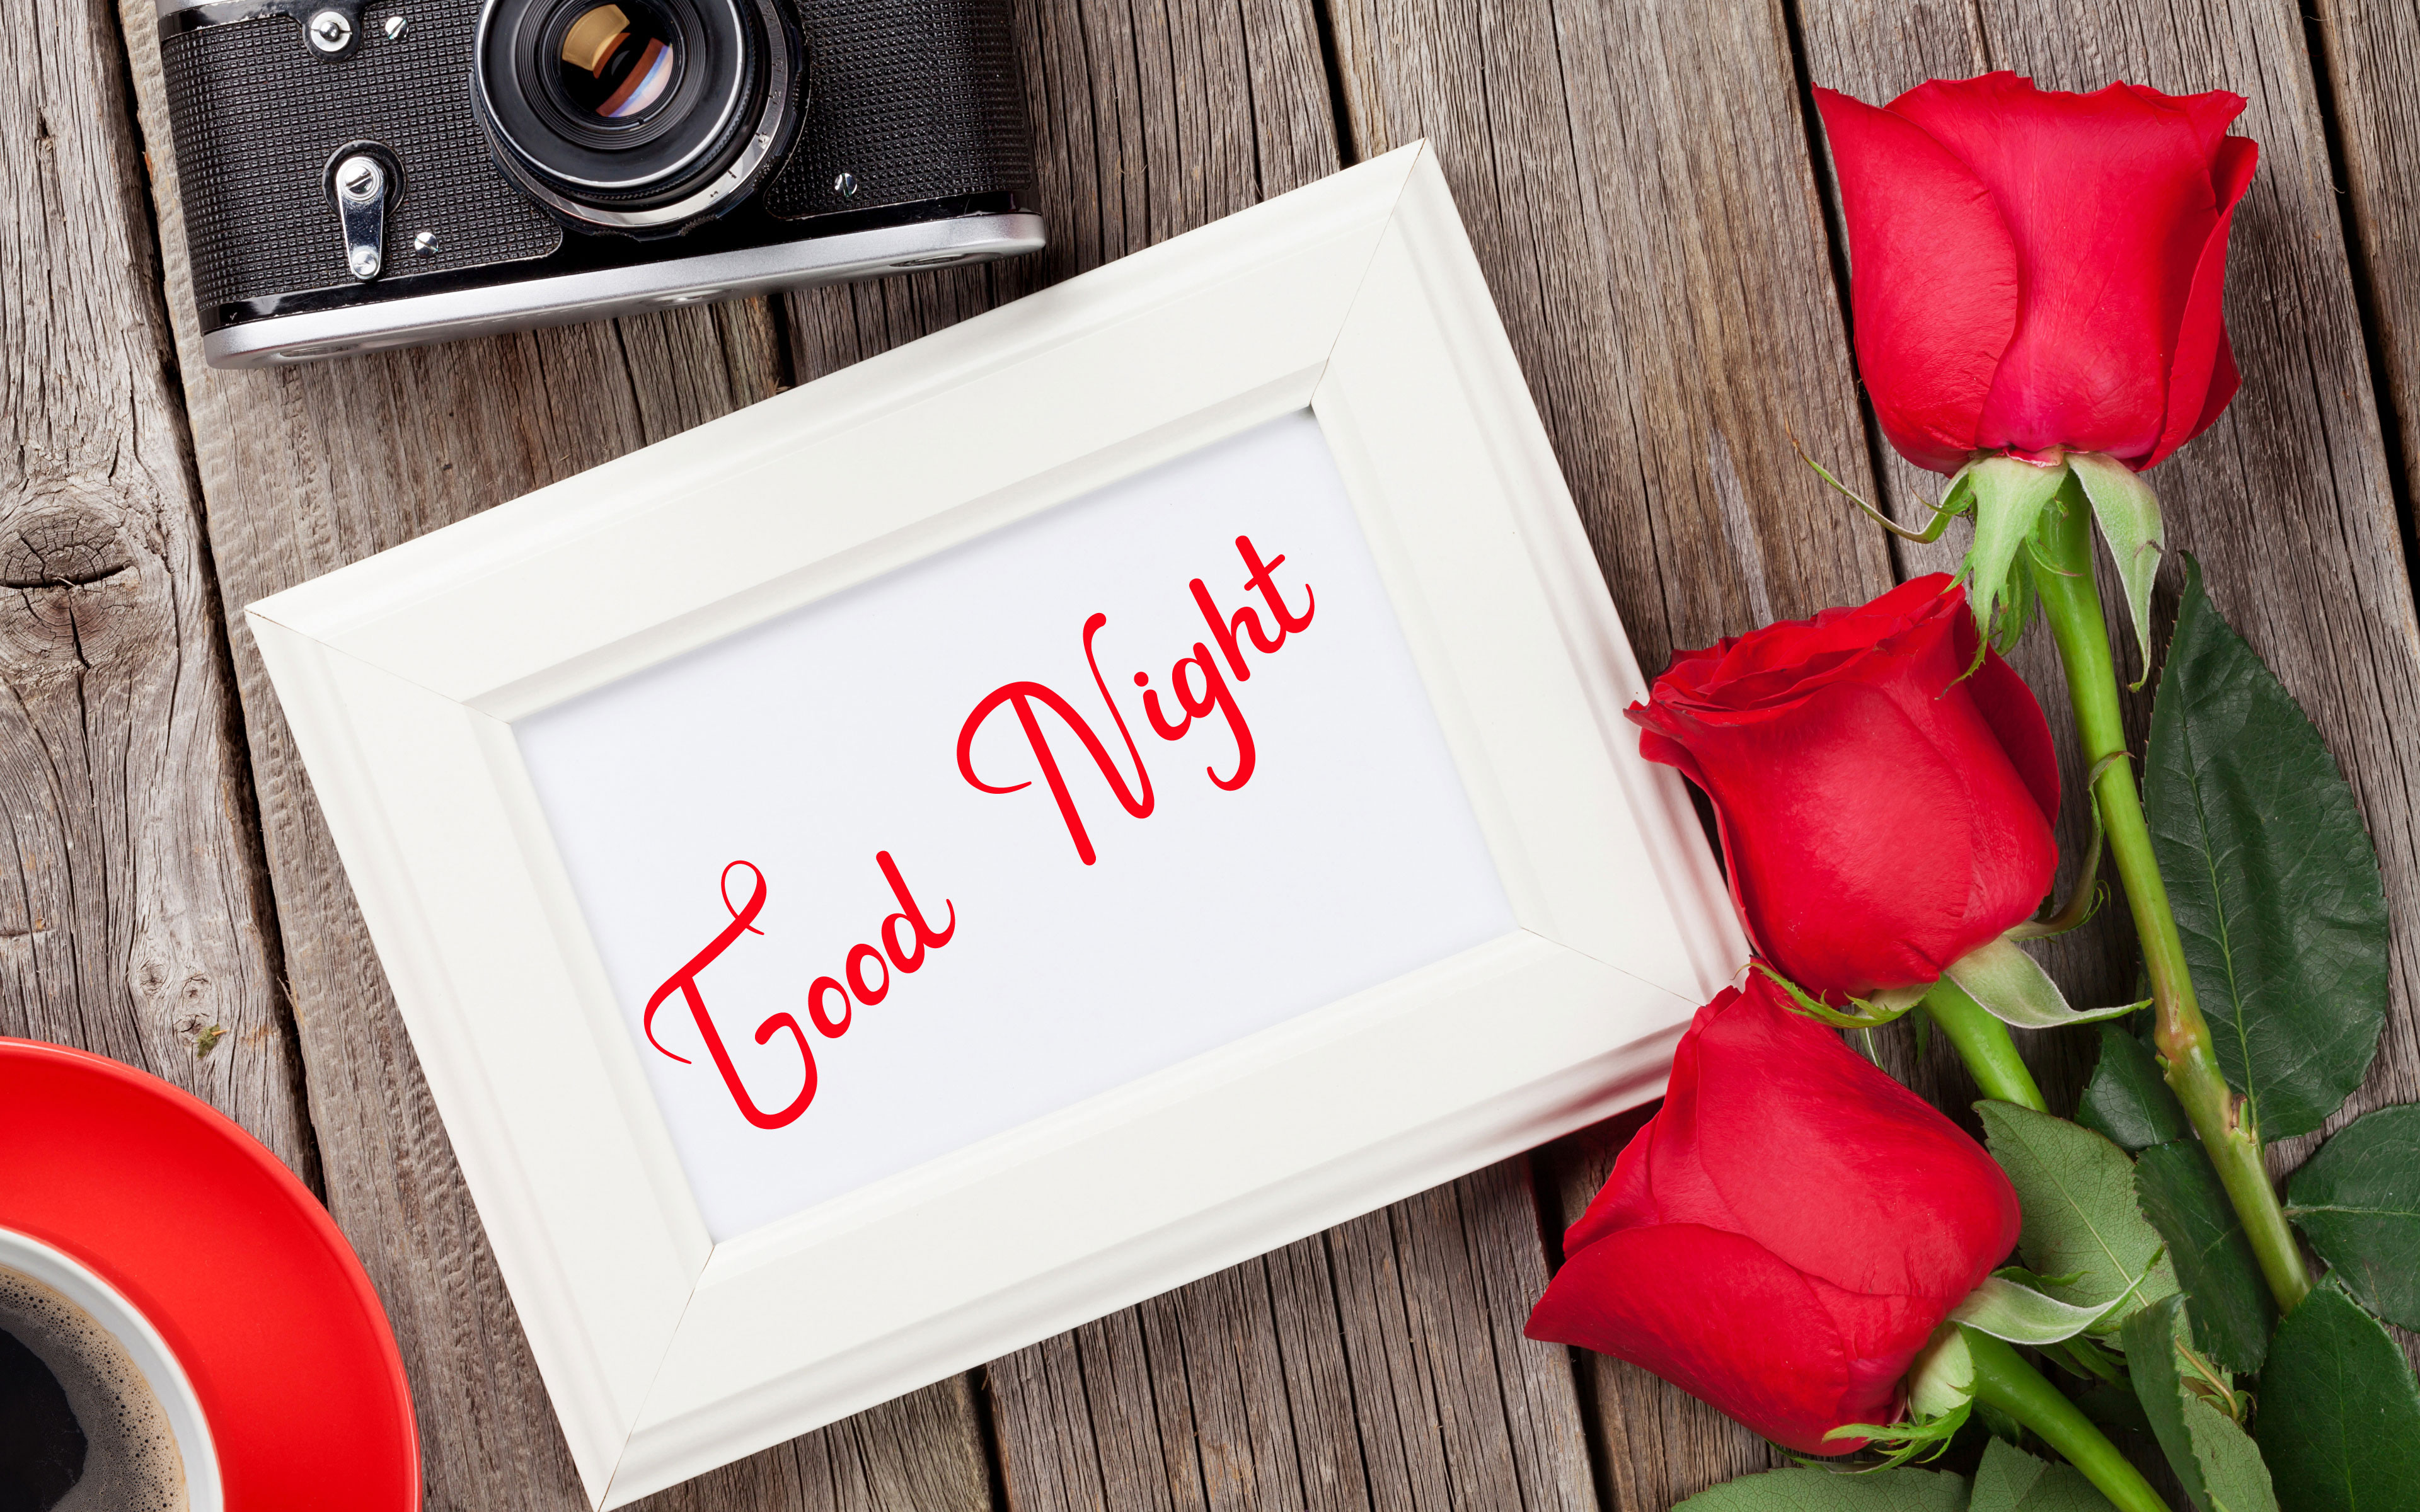 Beautiful Good Night Images pictures for free download